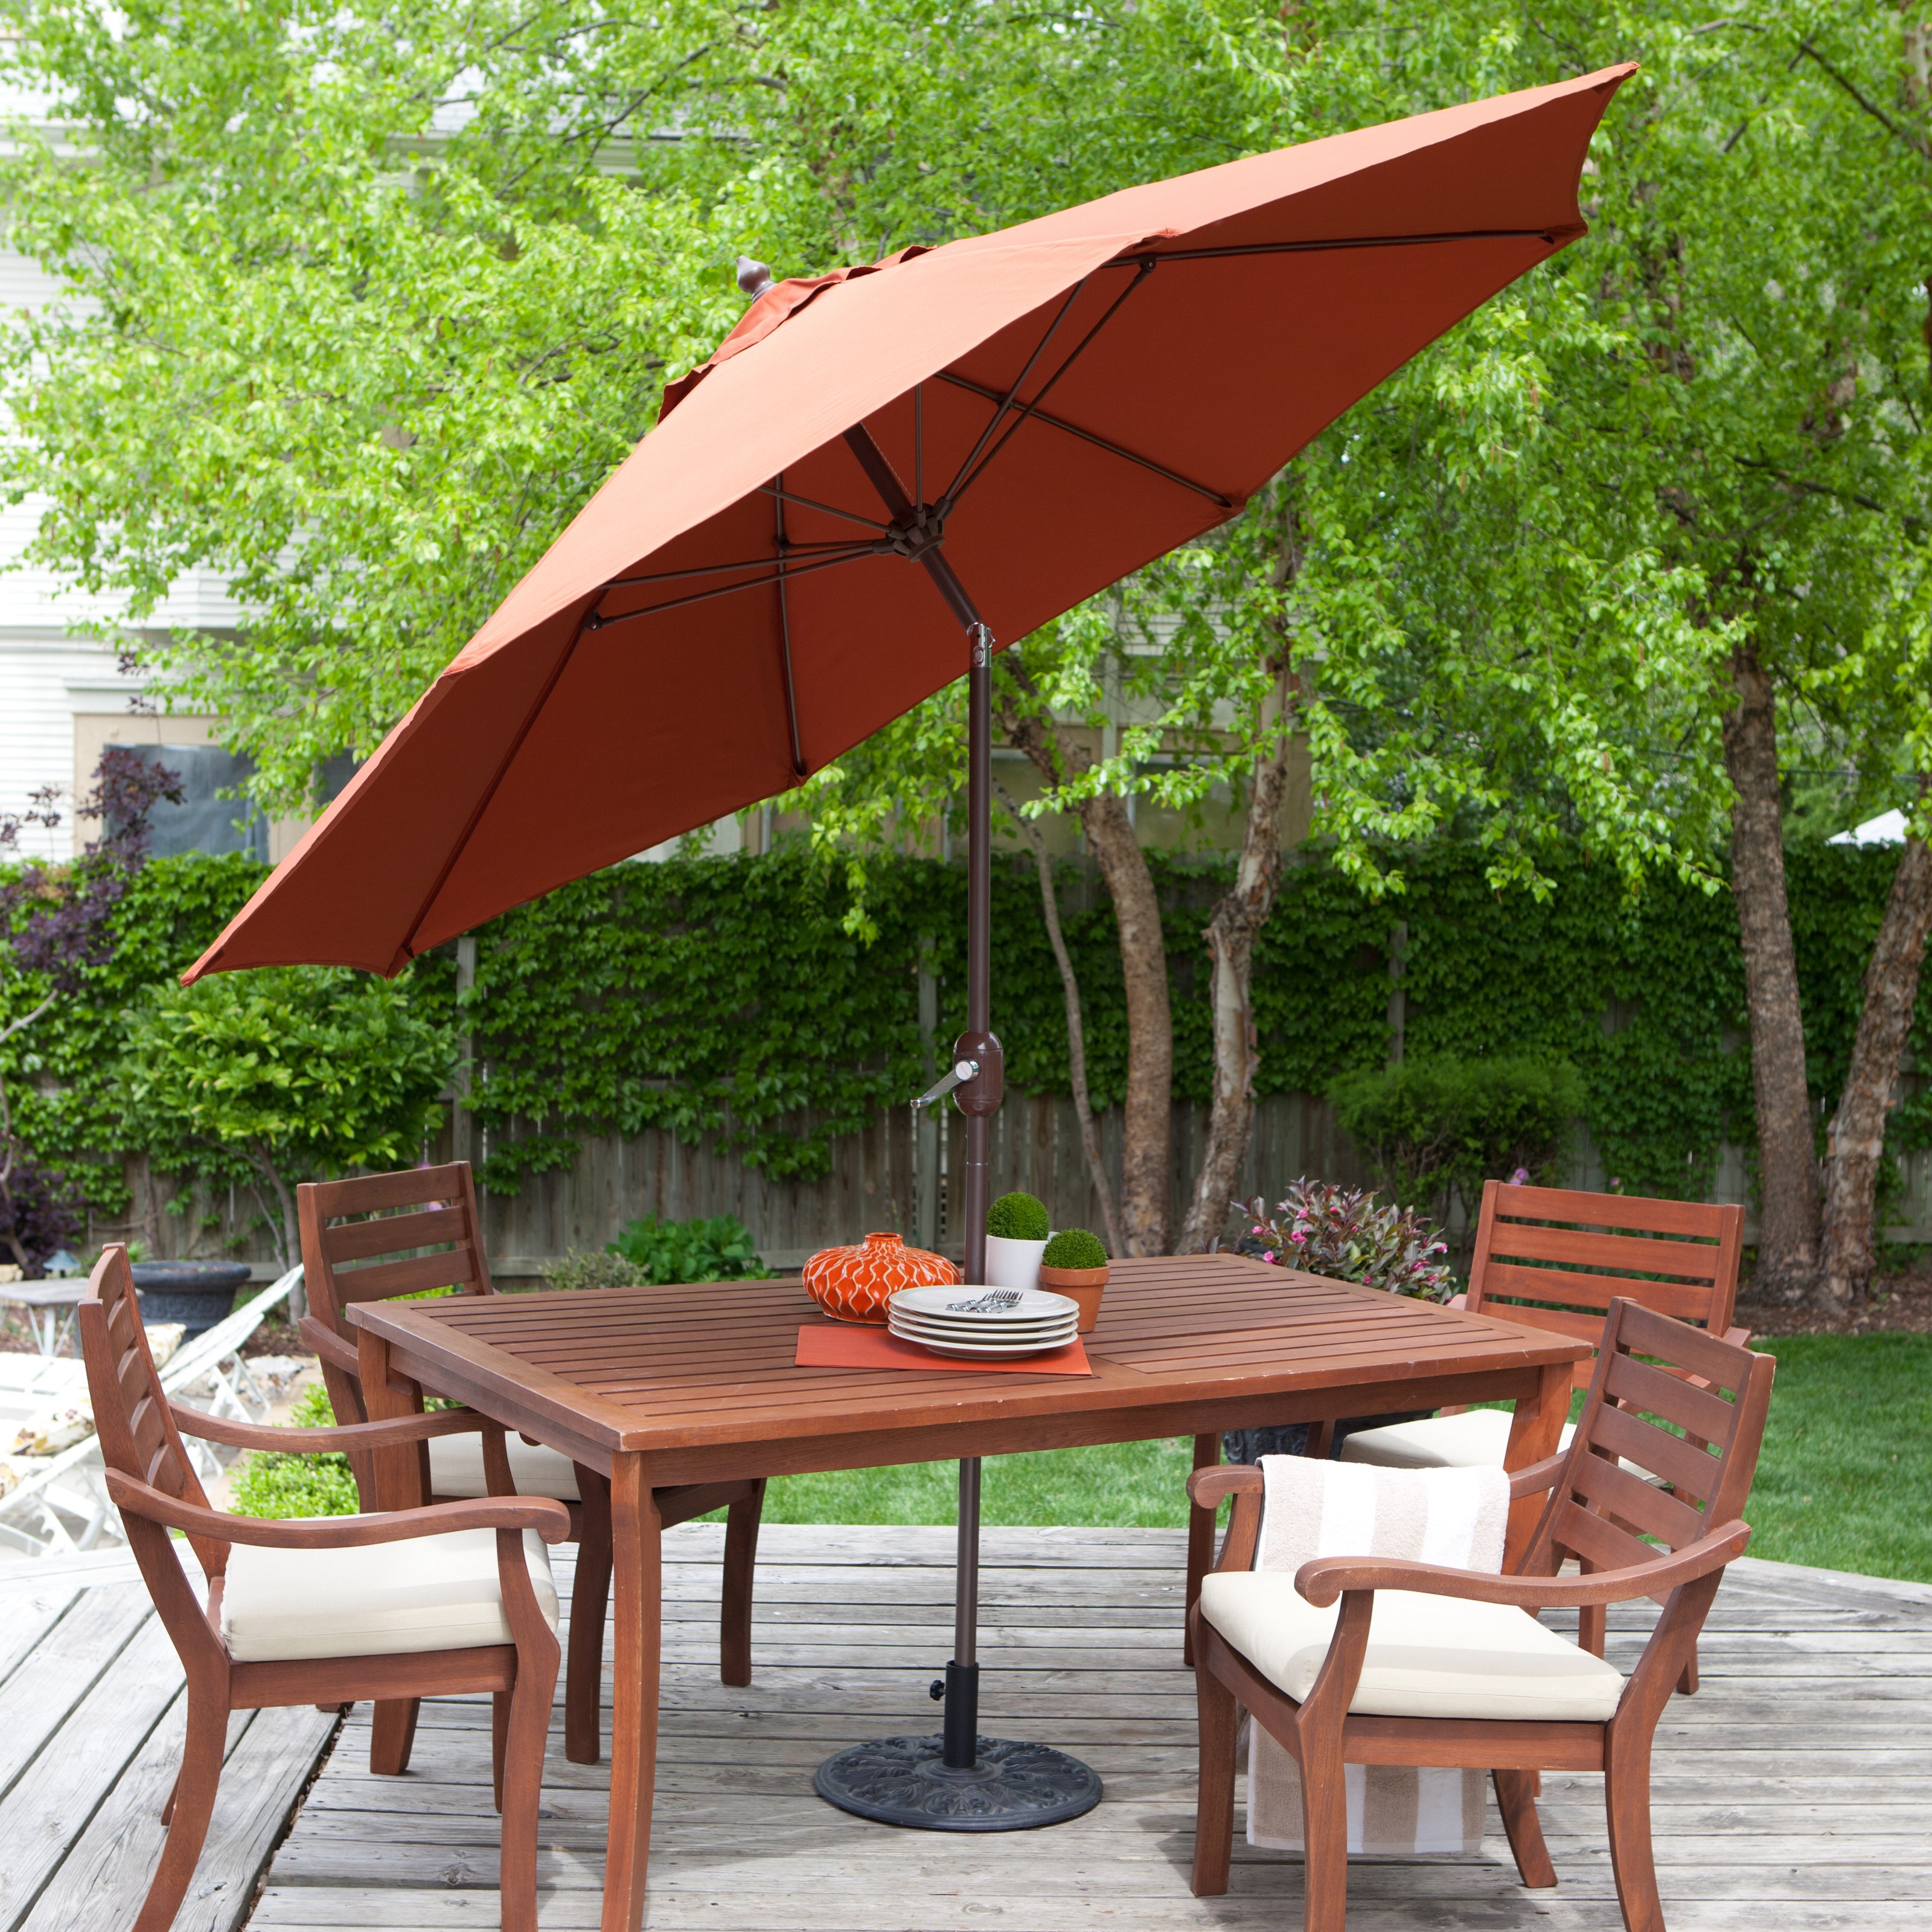 concept files from lamp for a ikea pics an umbrella concrete shade incredible wind make blinds resistant stand uncategorized patio and inspiration